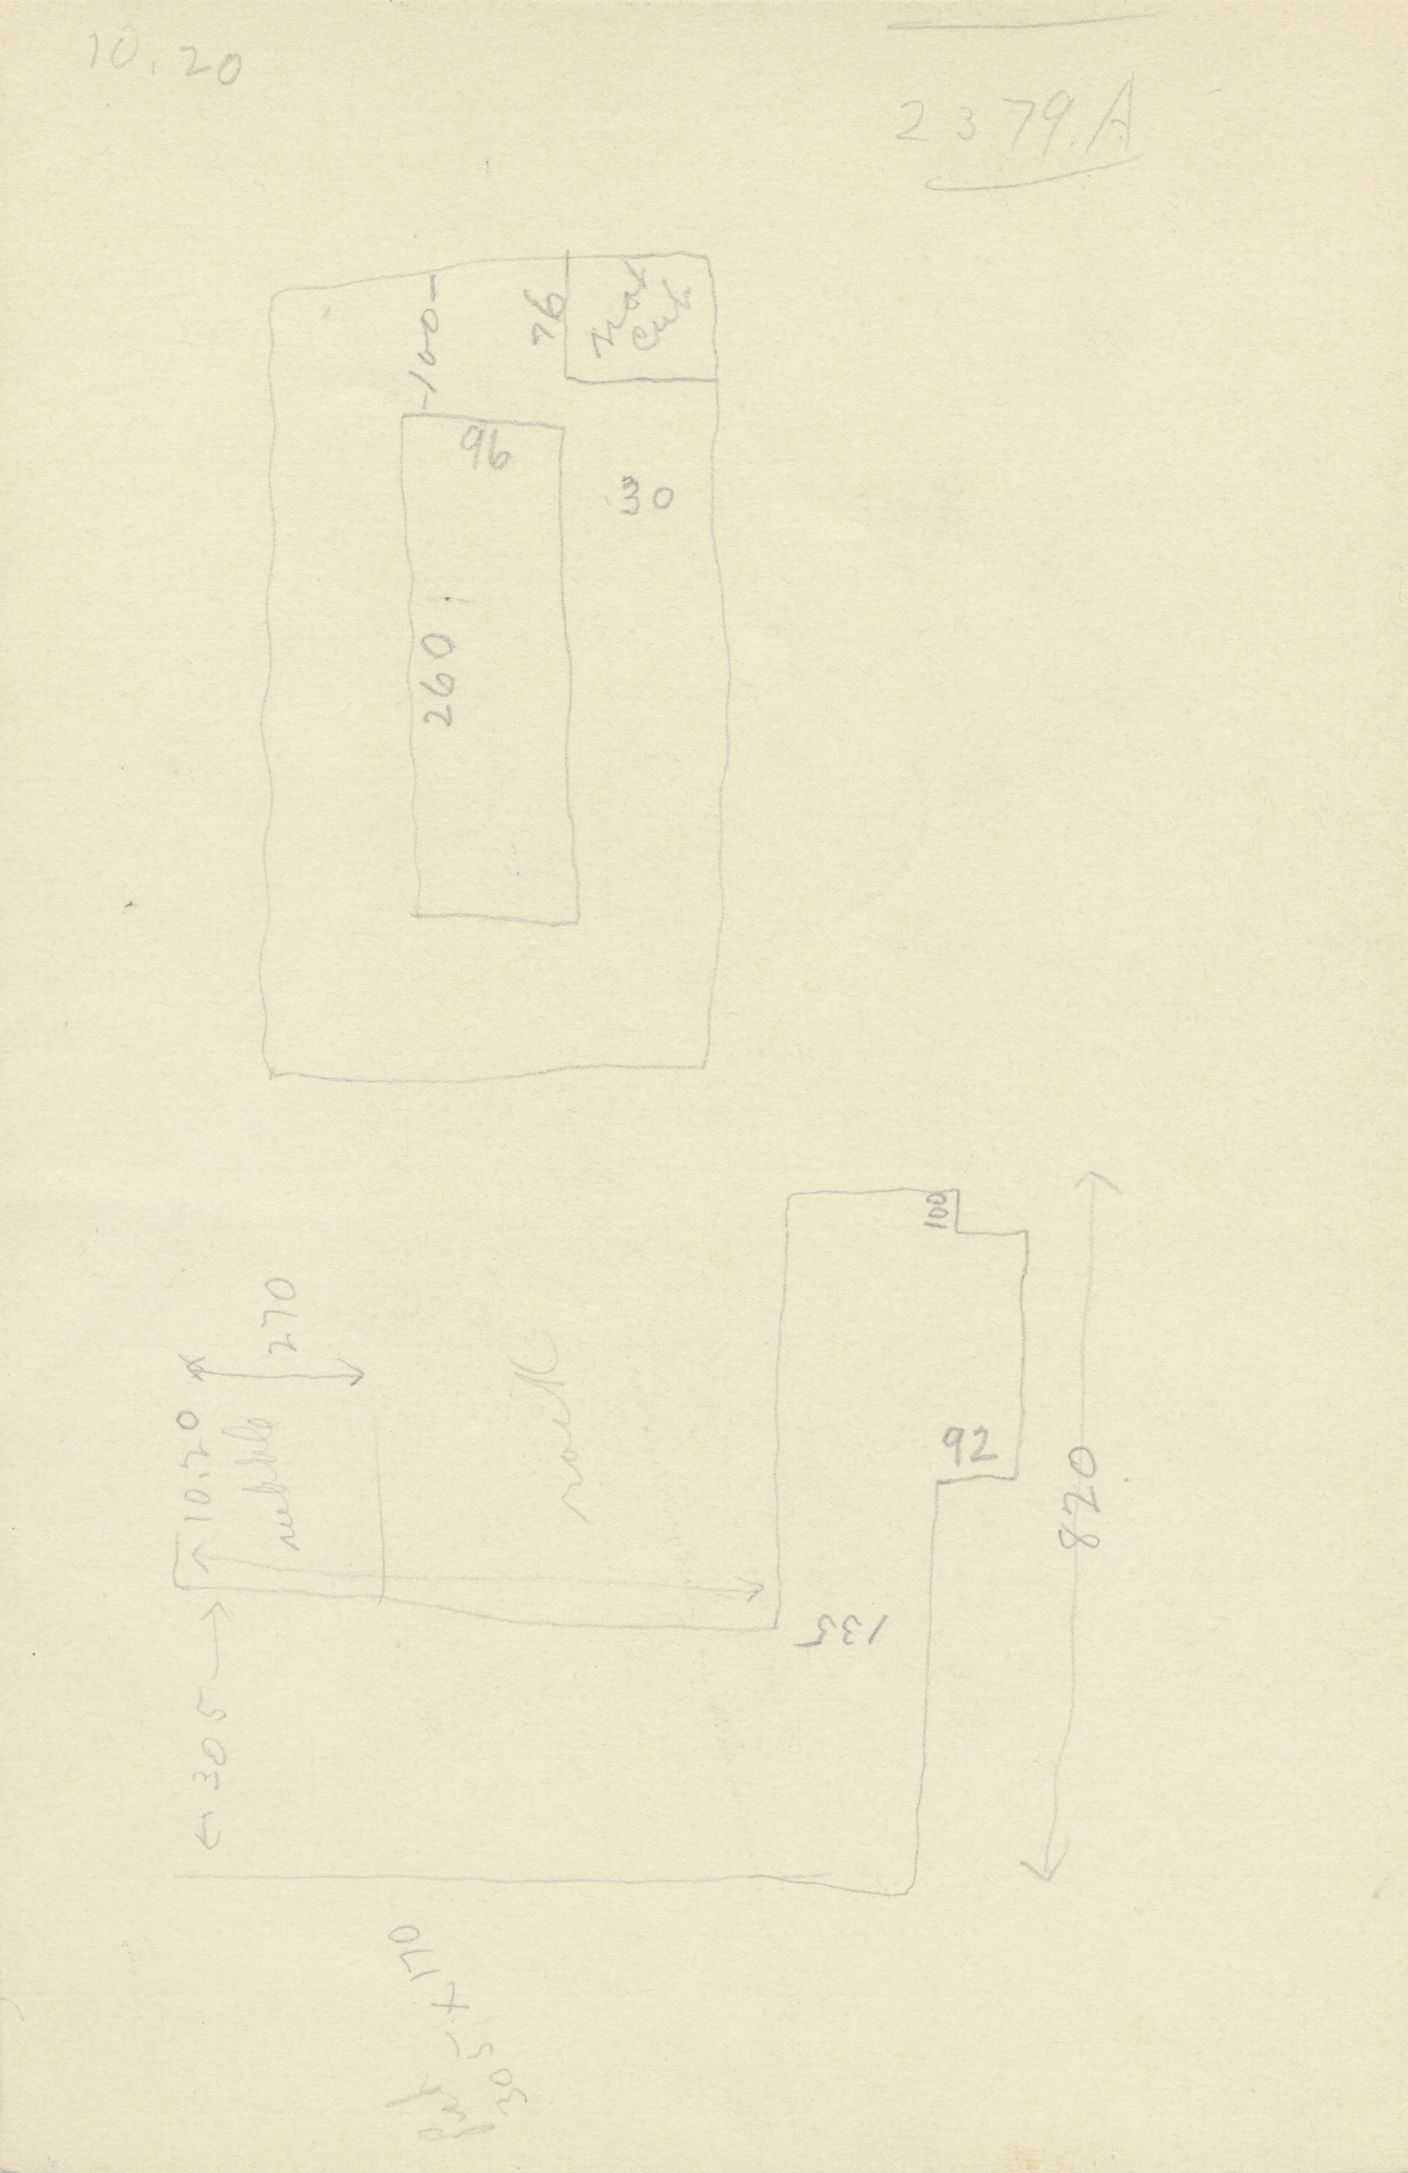 Maps and plans: G 2379, Shaft A, notes